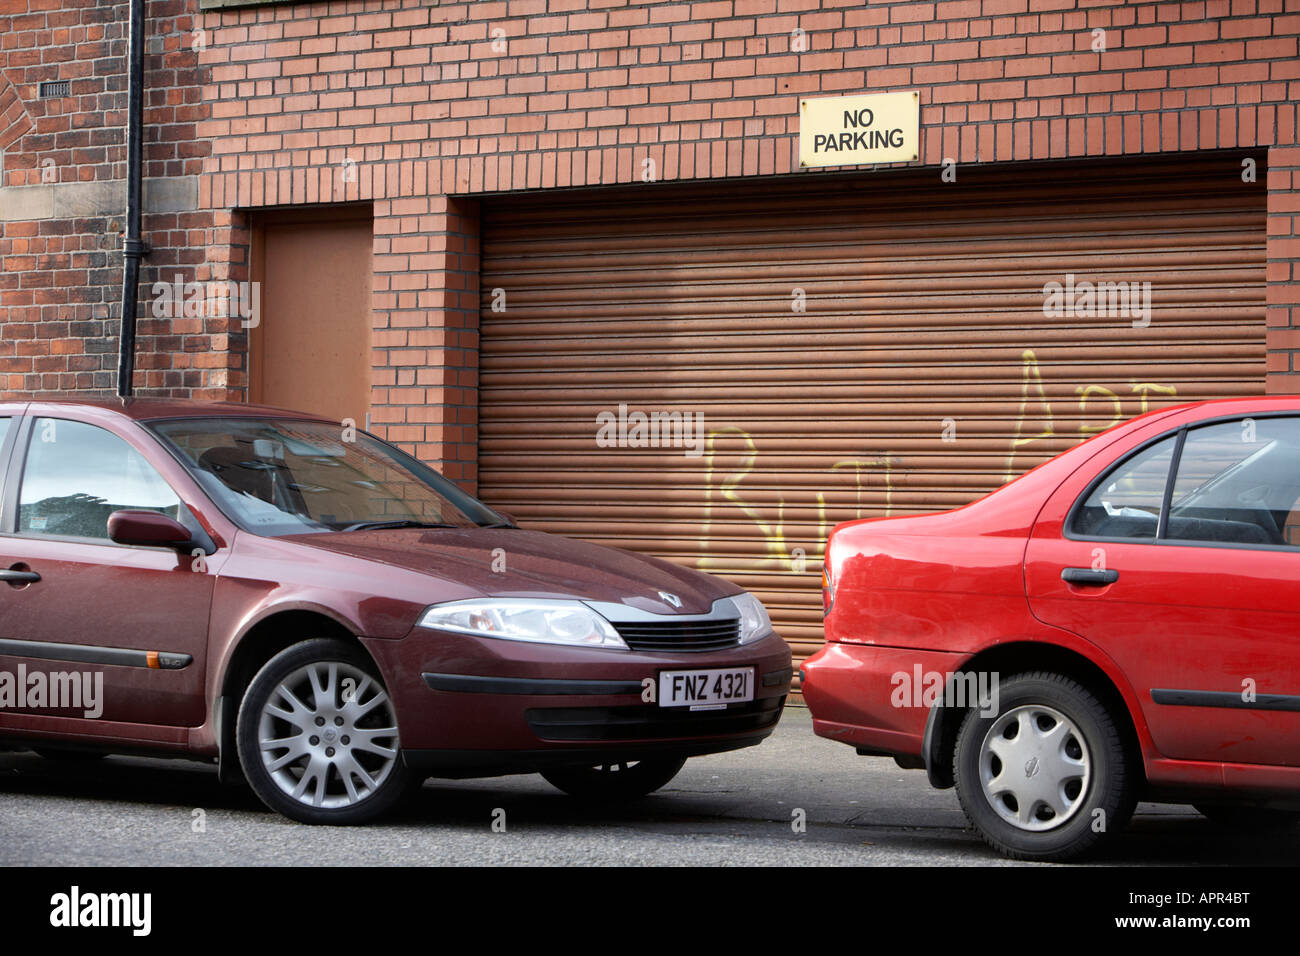 two cars parked in front of steel garage shutter with no parking sign Belfast Northern Ireland UK - Stock Image